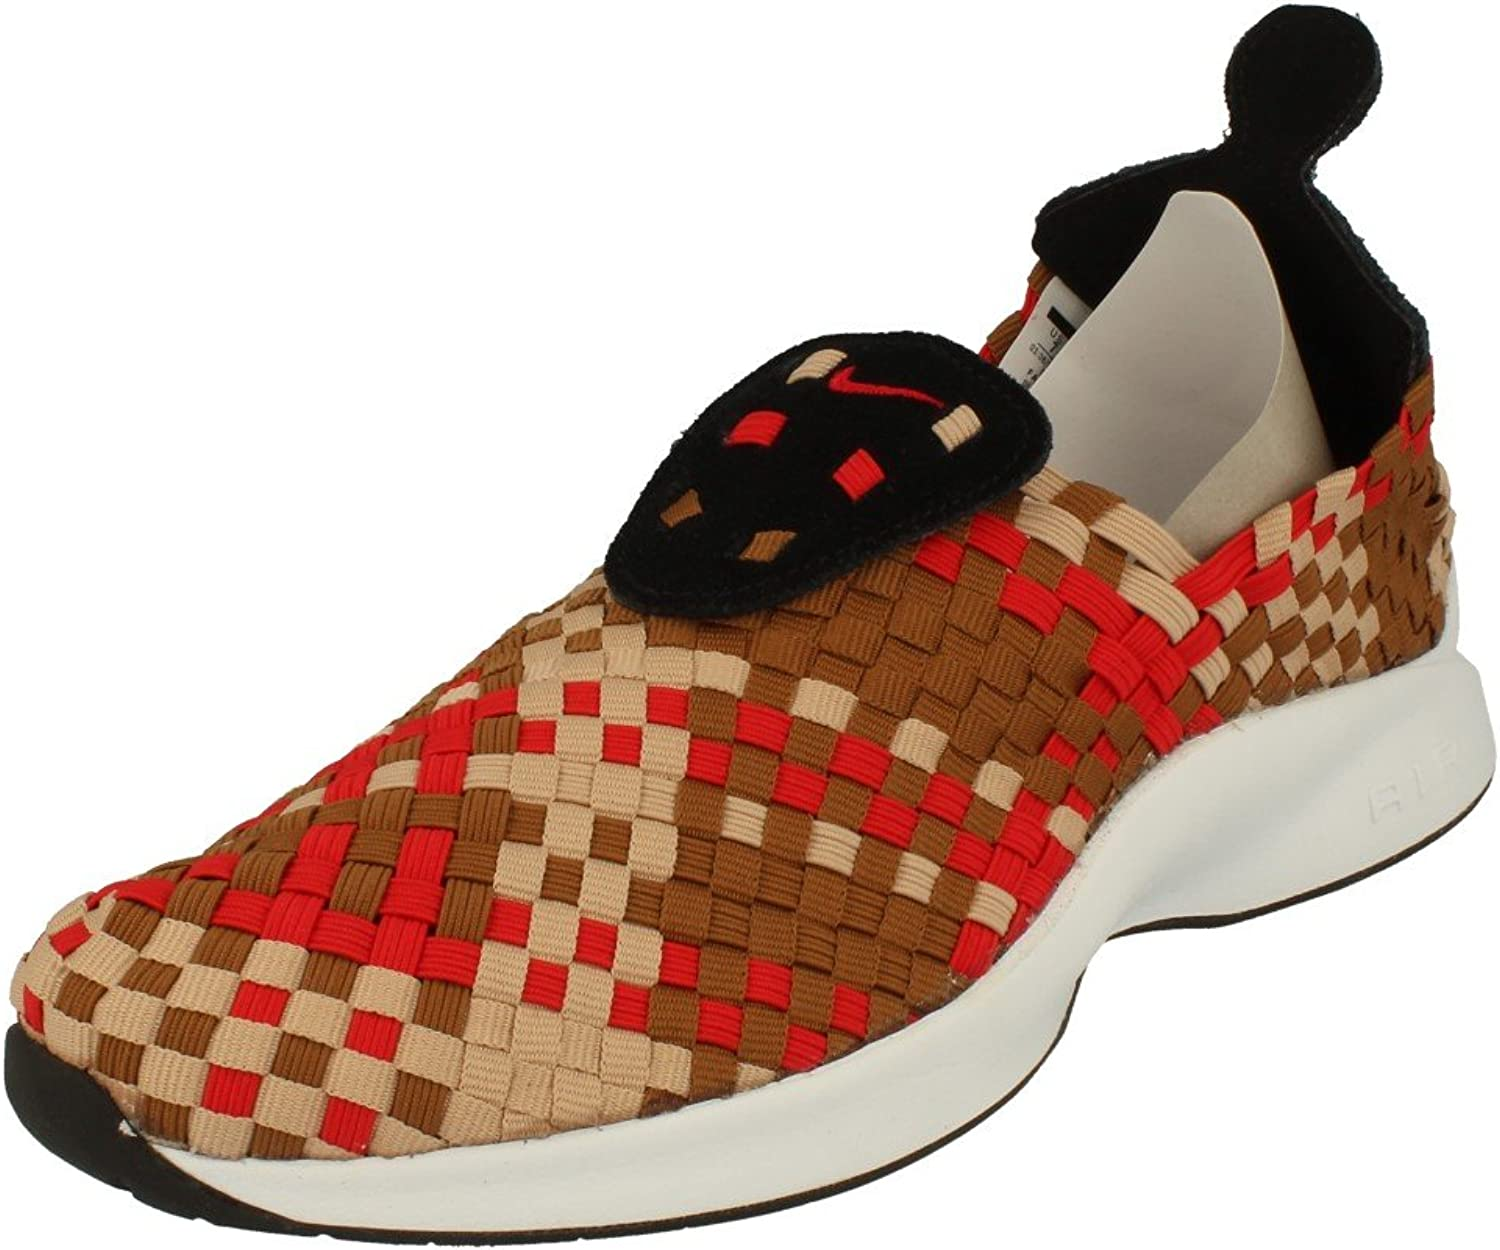 Nike Air Woven Mens Running Trainers 312422 Sneakers shoes